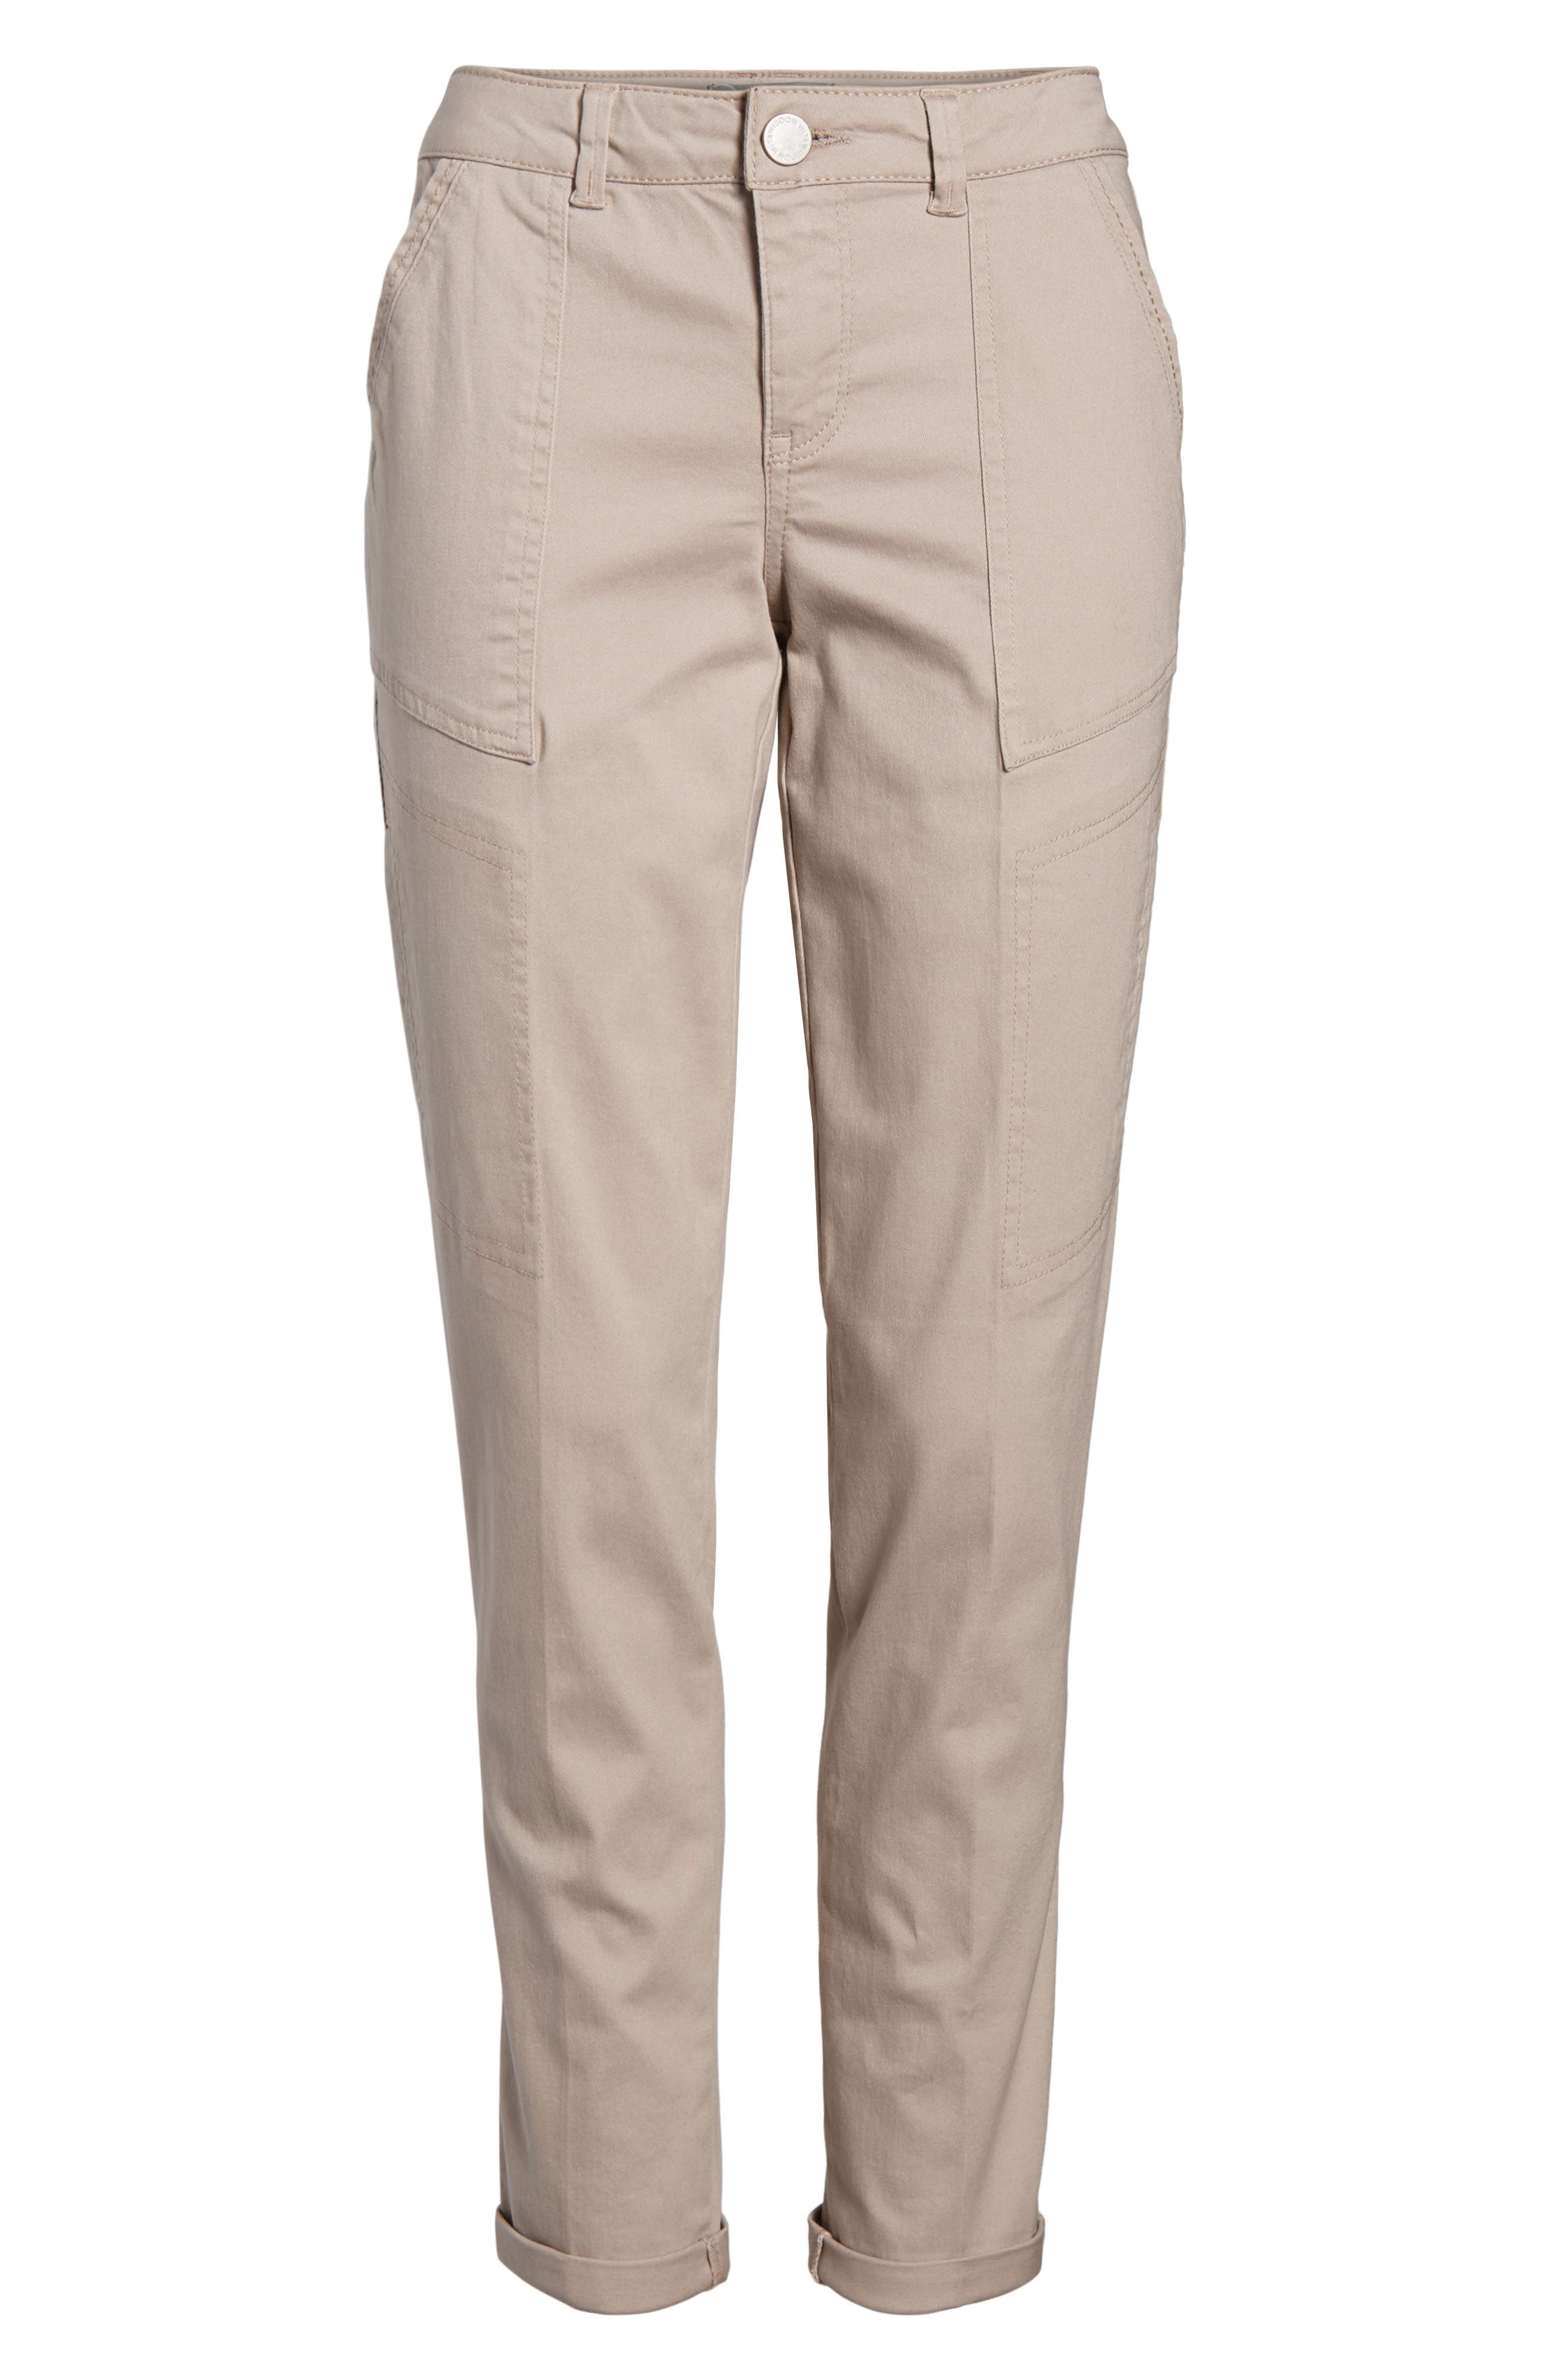 Twill Cargo Pants,                             Alternate thumbnail 7, color,                             FLAX